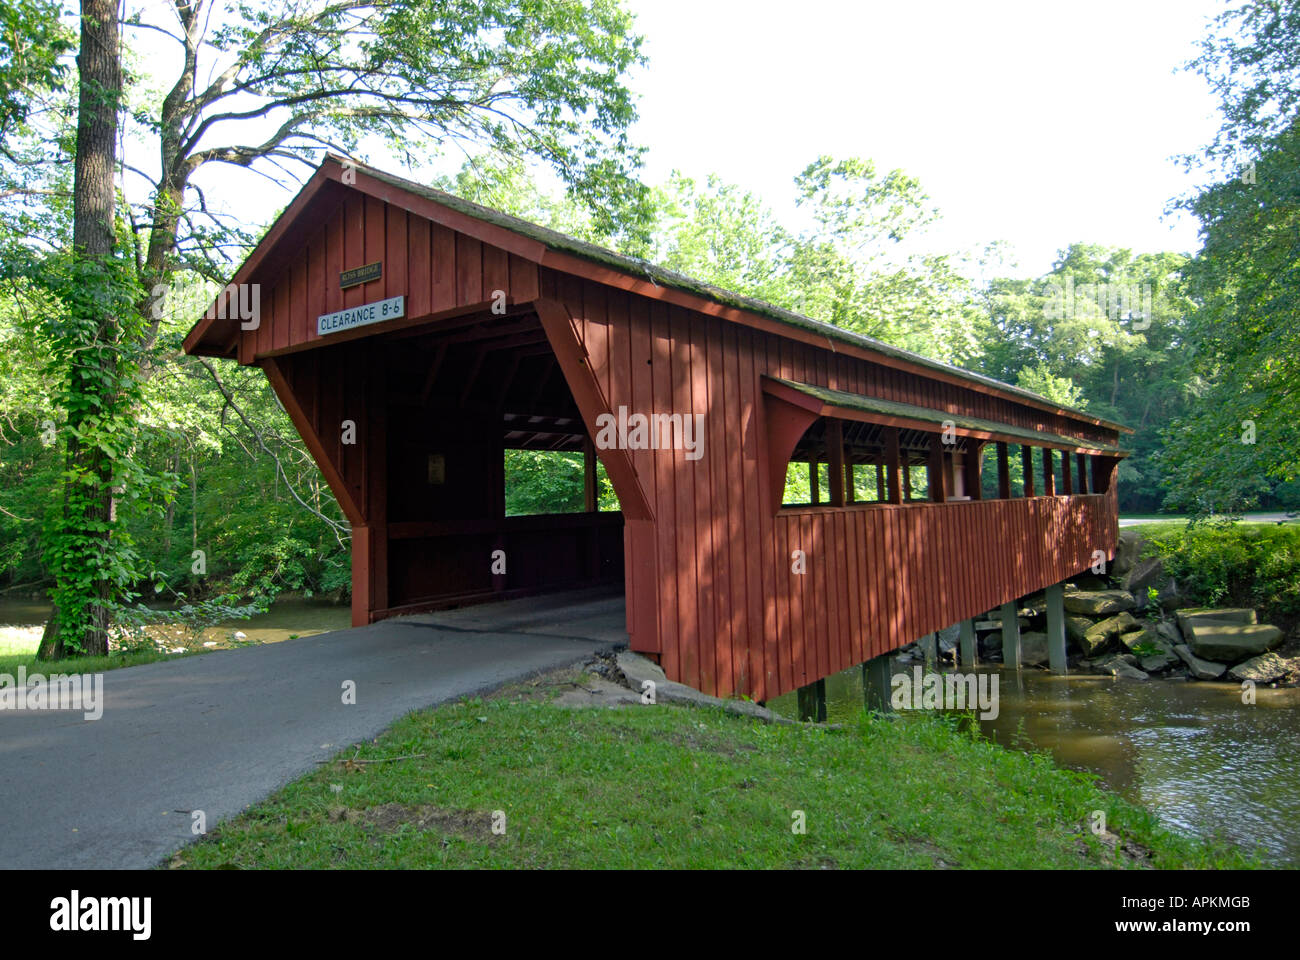 The Ross Bridge A Covered Wooden Bridge Located In Tawawa Park In